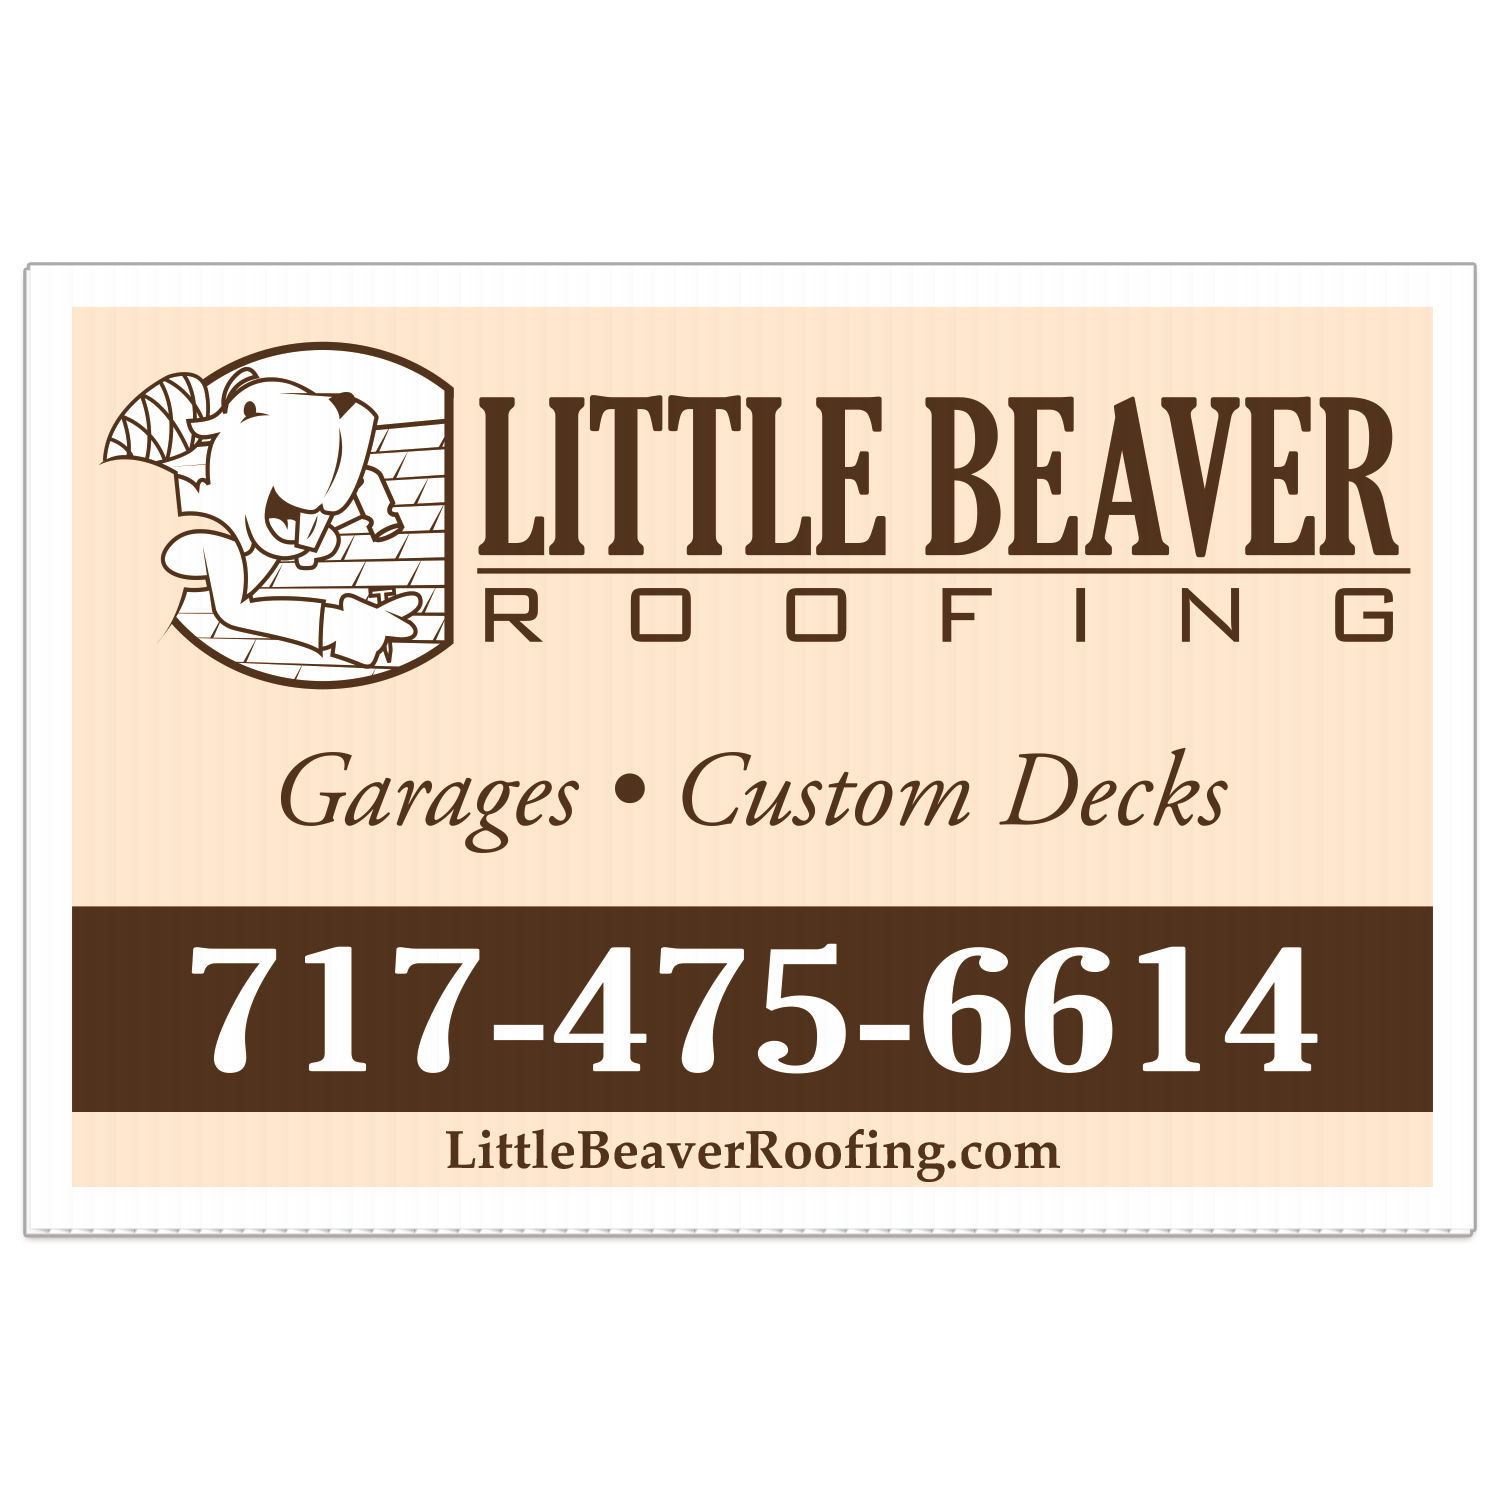 https://www.sswprinting.com/images/products_gallery_images/17531_Little-Beaver_hi-res.png